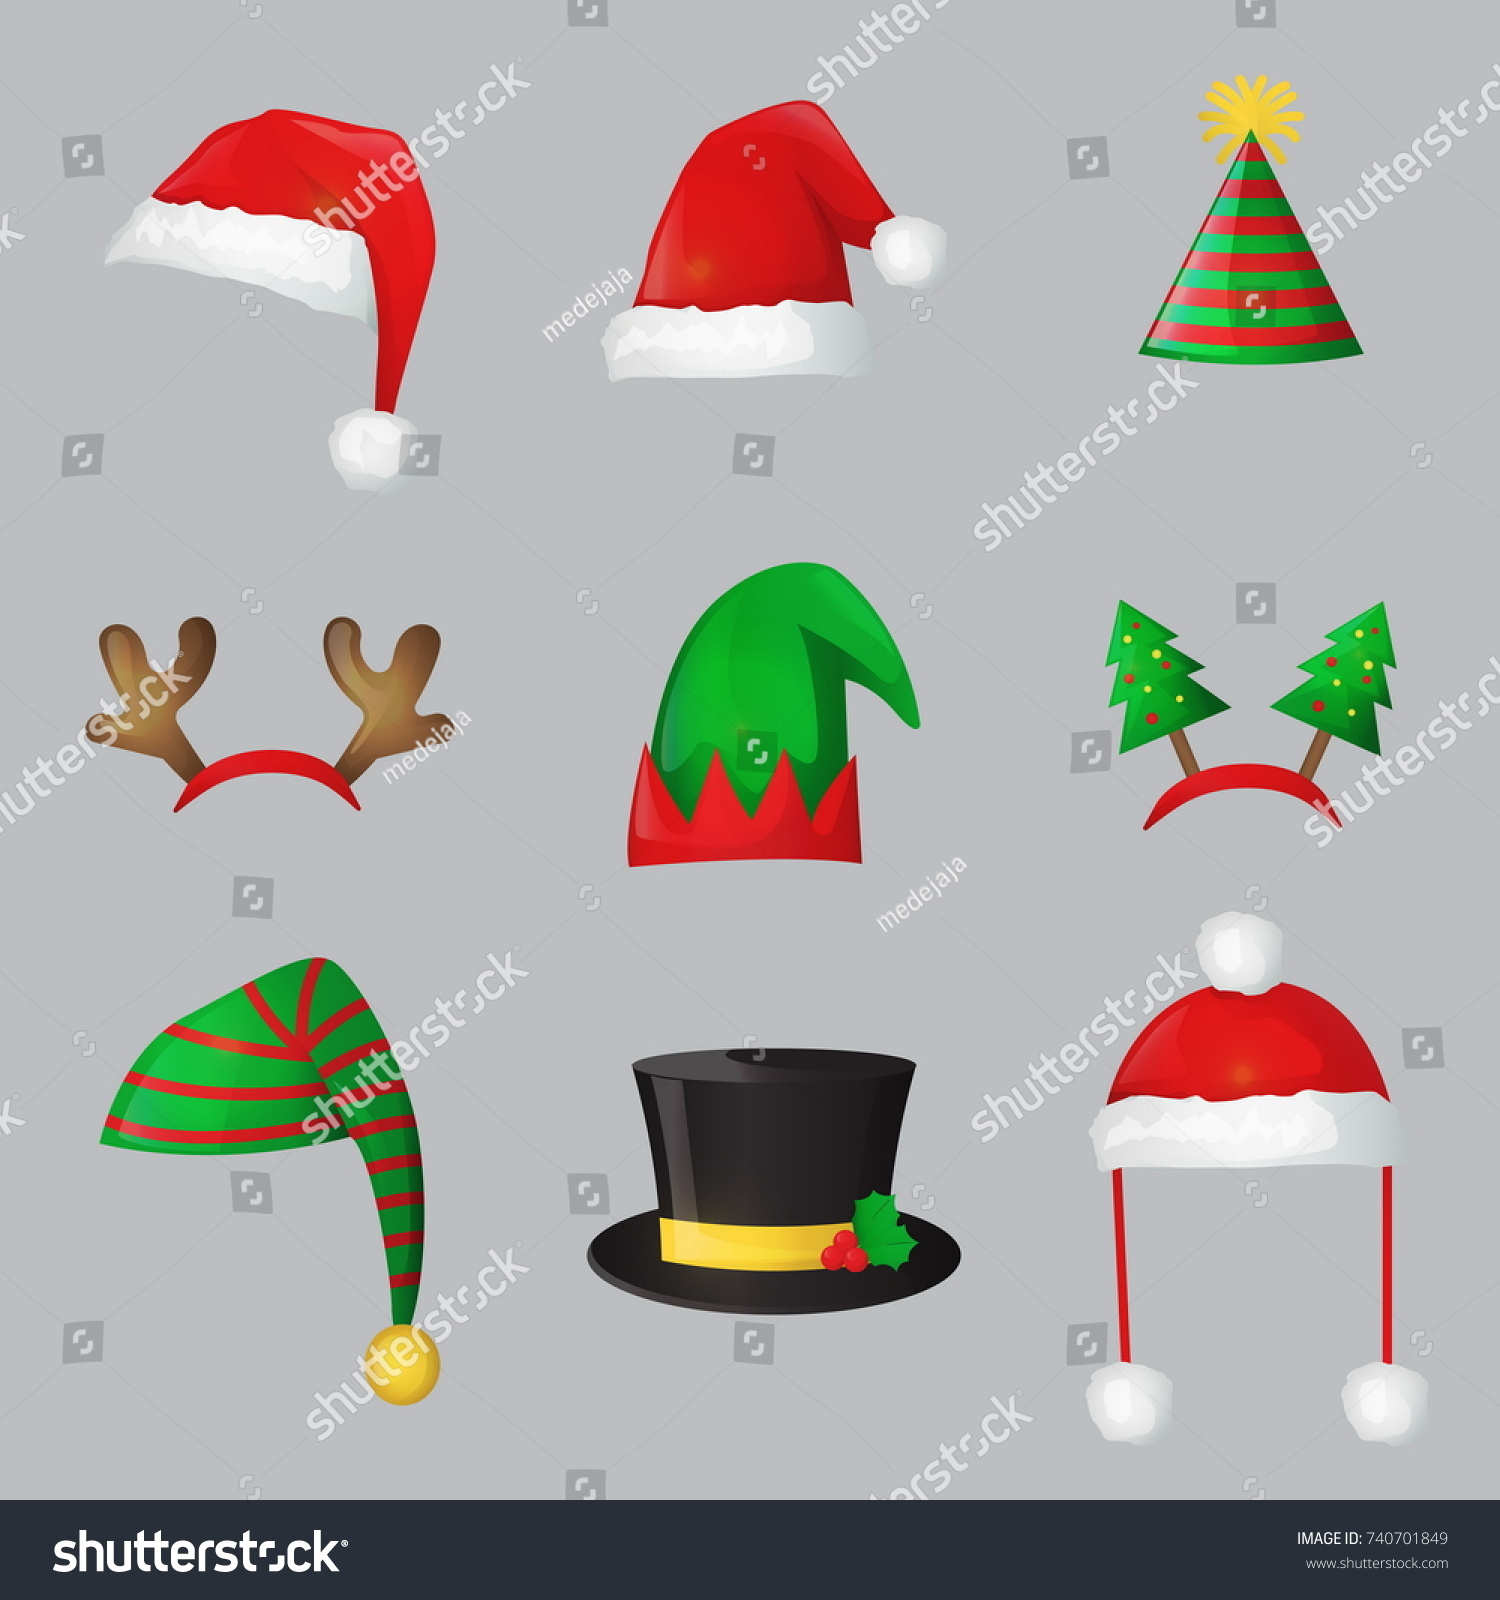 Christmas Festive Collection Cute Celebration New Stock Vector ...